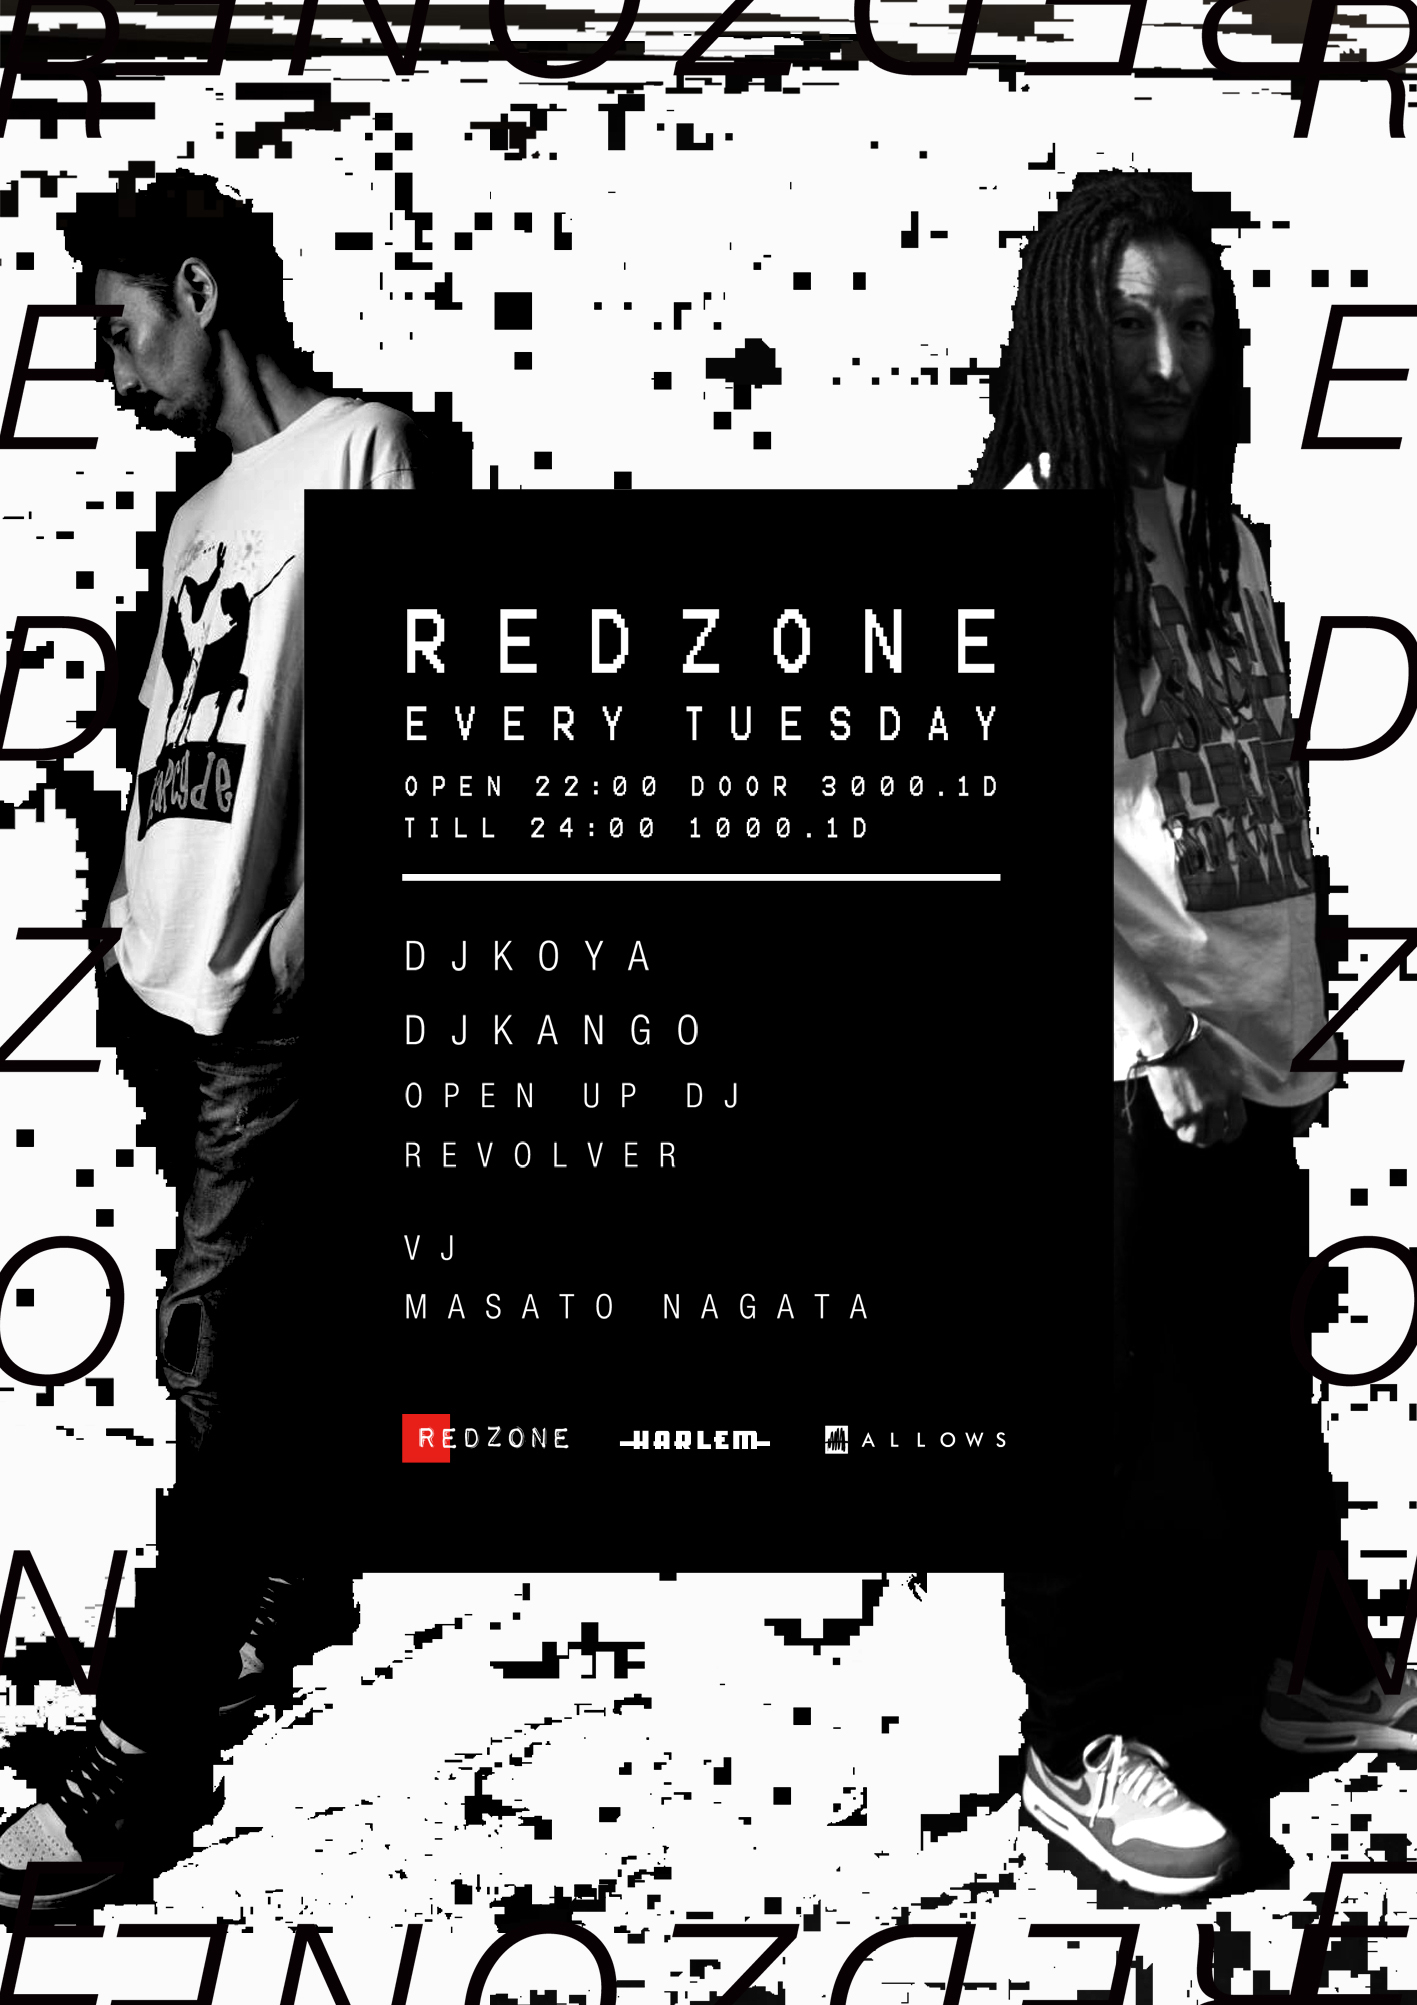 RED ZONE supported by GENRE BNDR